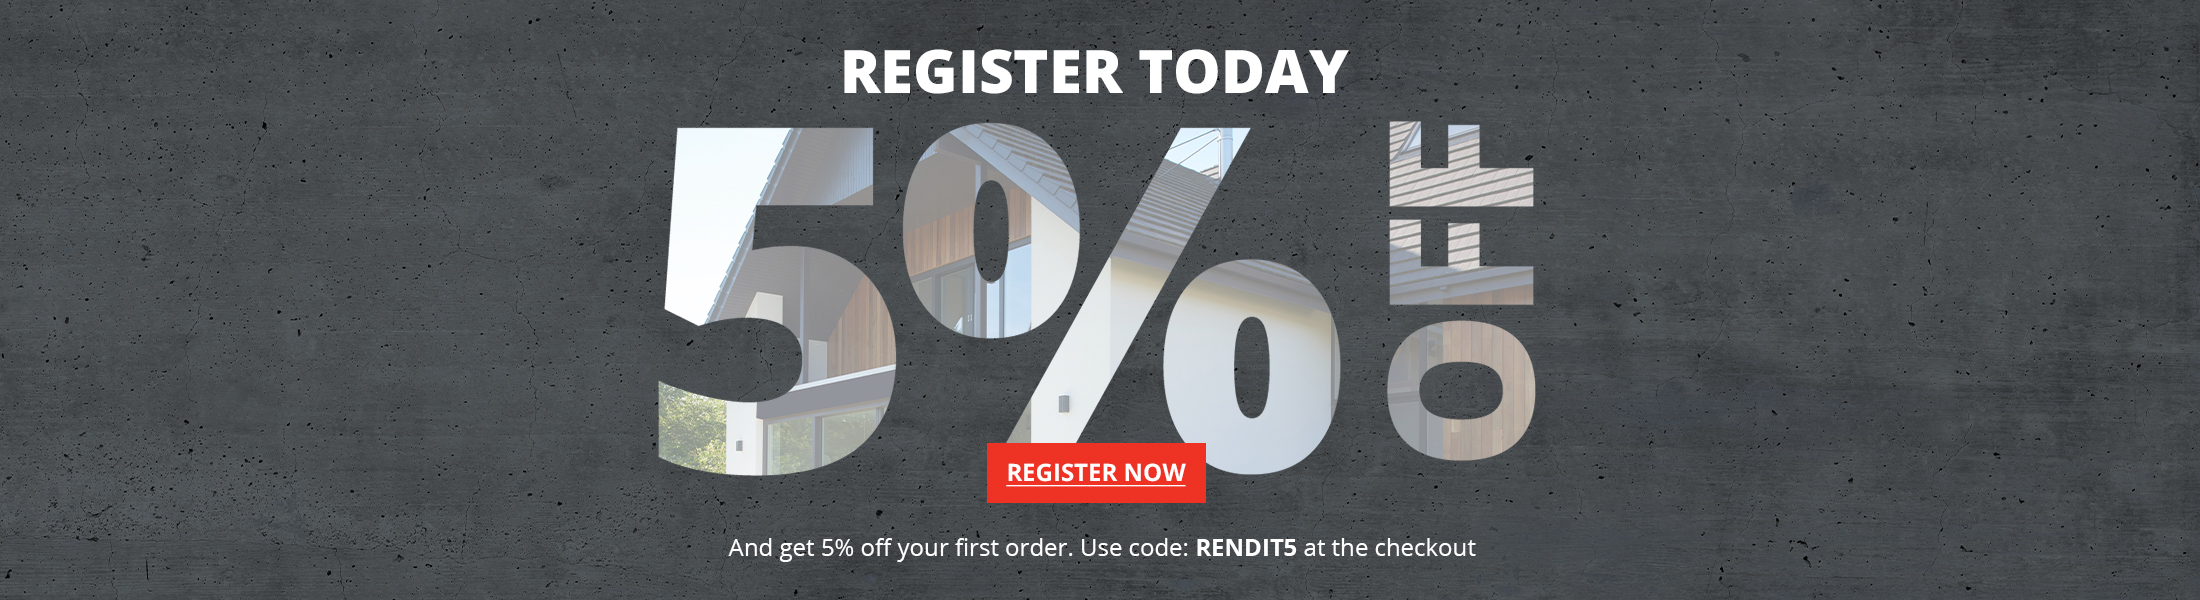 New Rendit Customer Registerations receive 5% OFF First Order